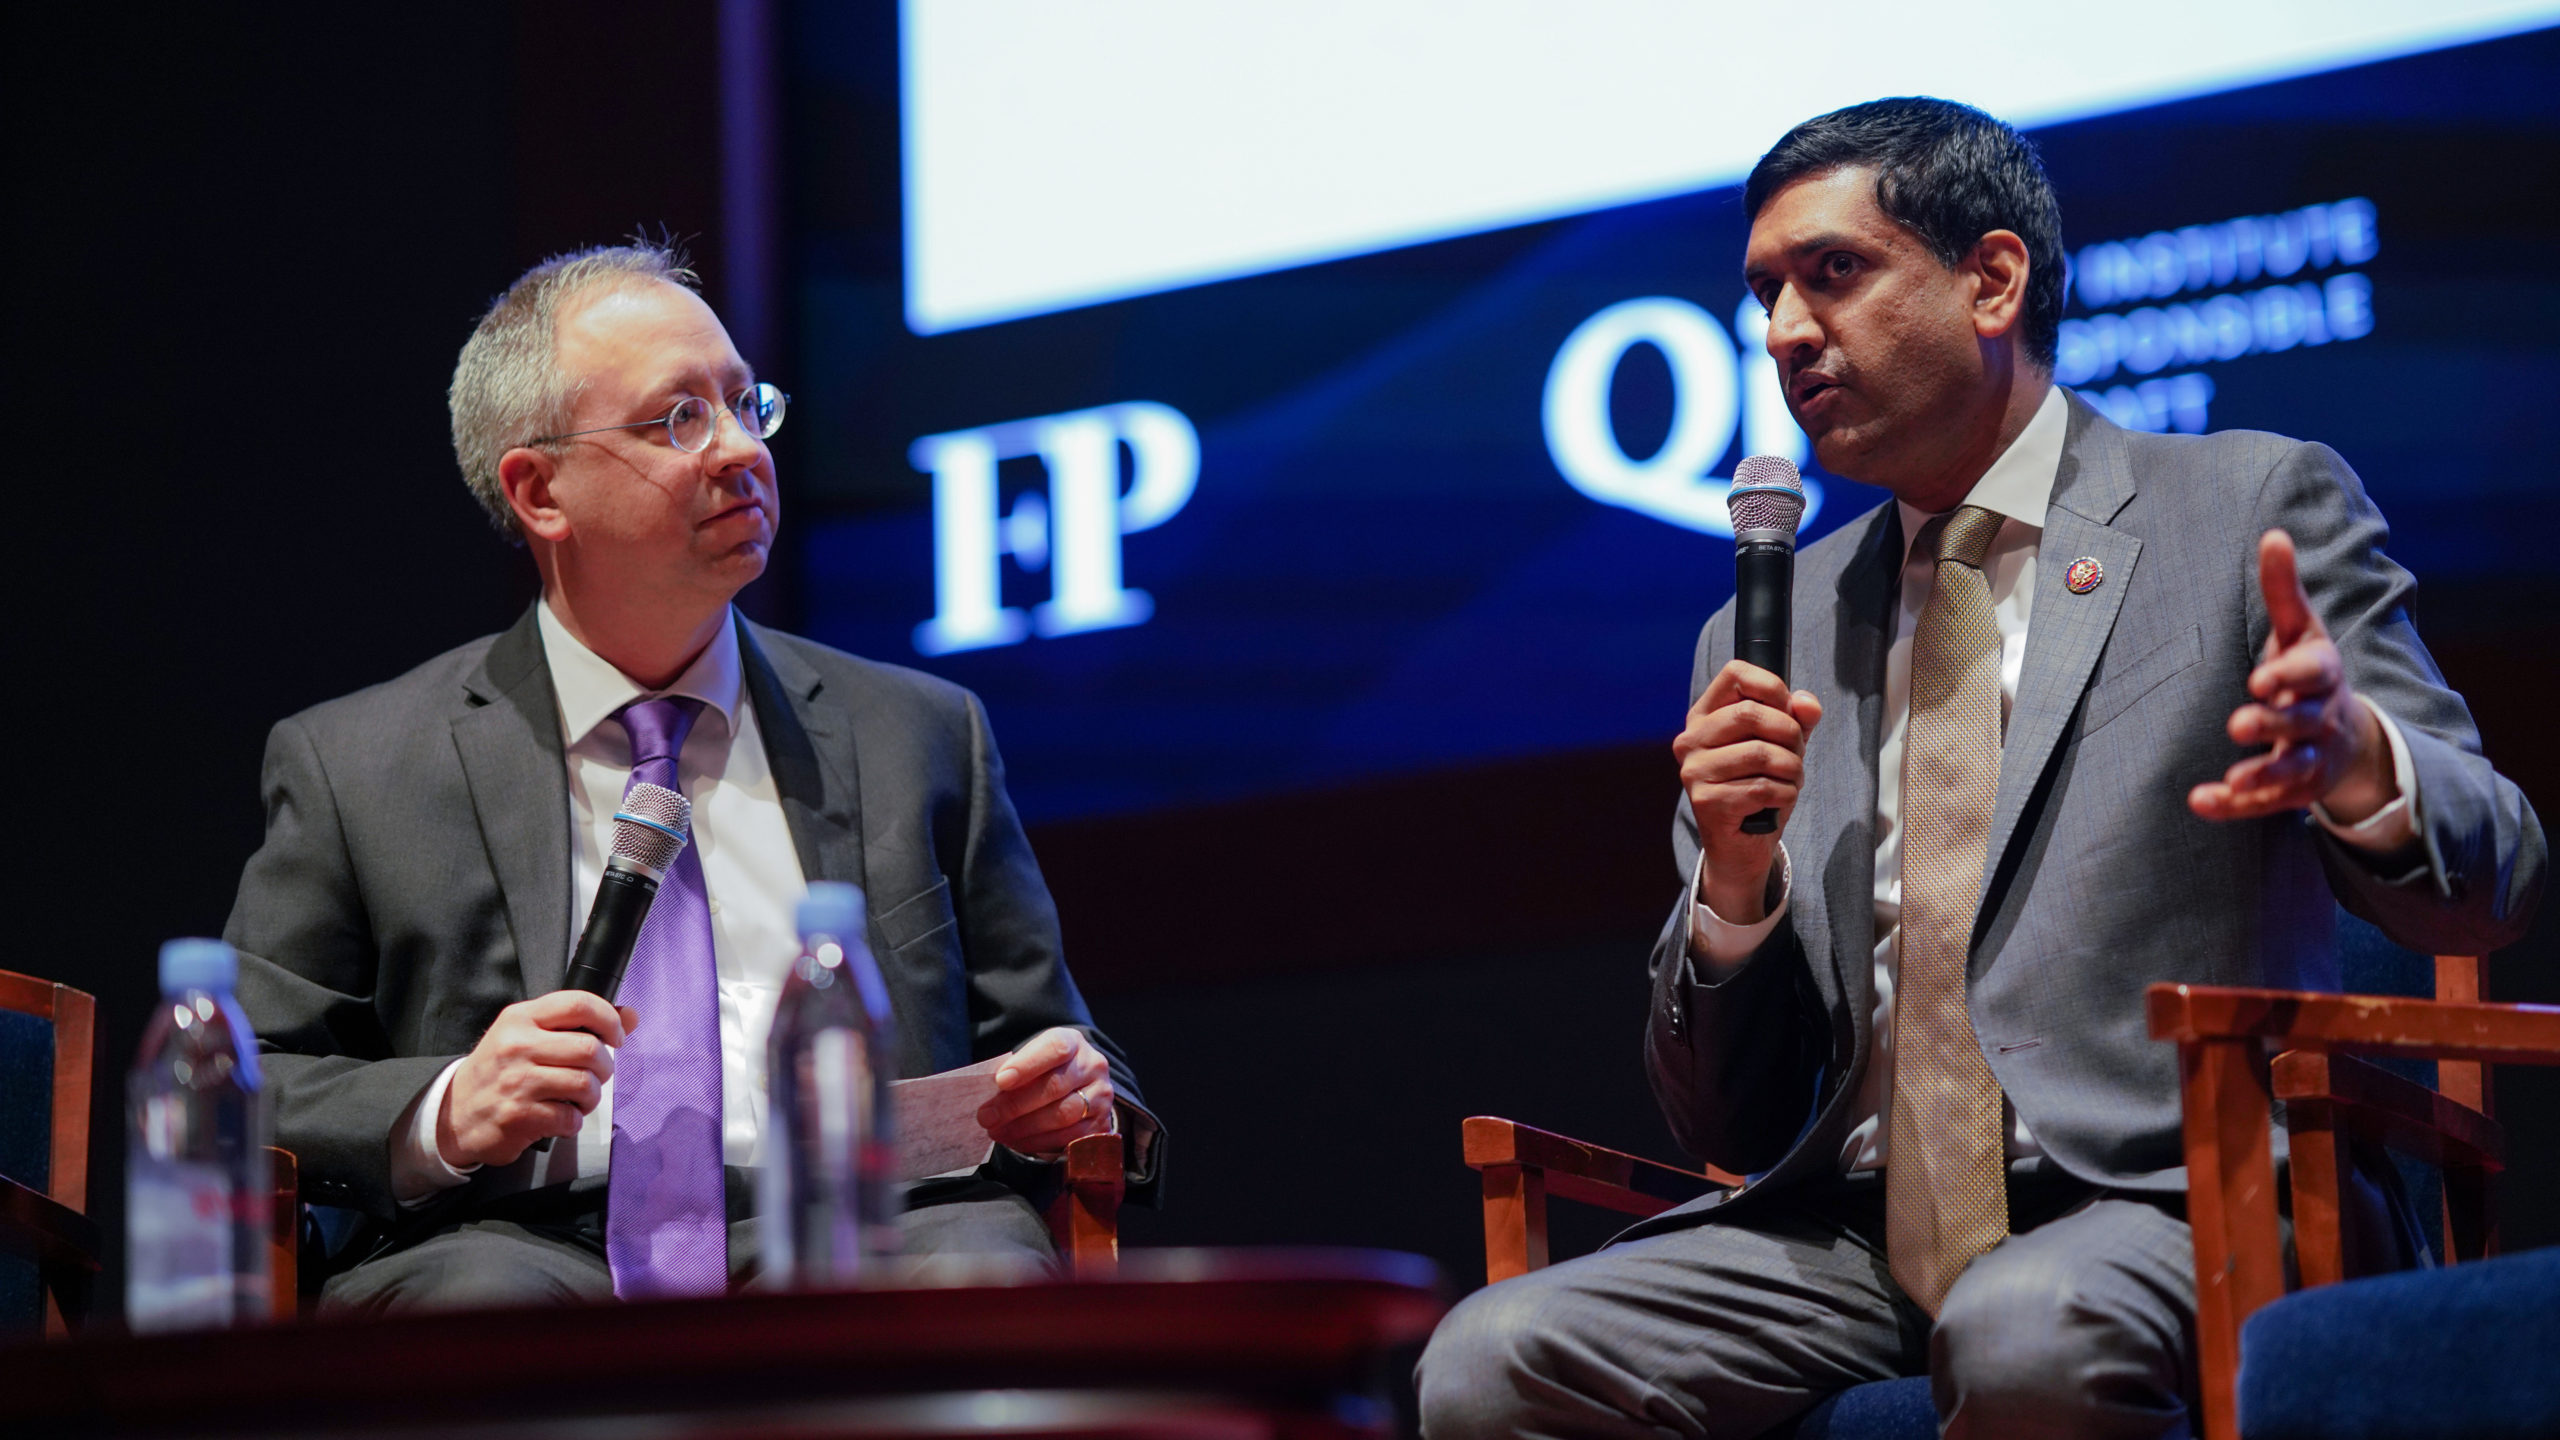 Conversation with U.S. Rep. Ro Khanna